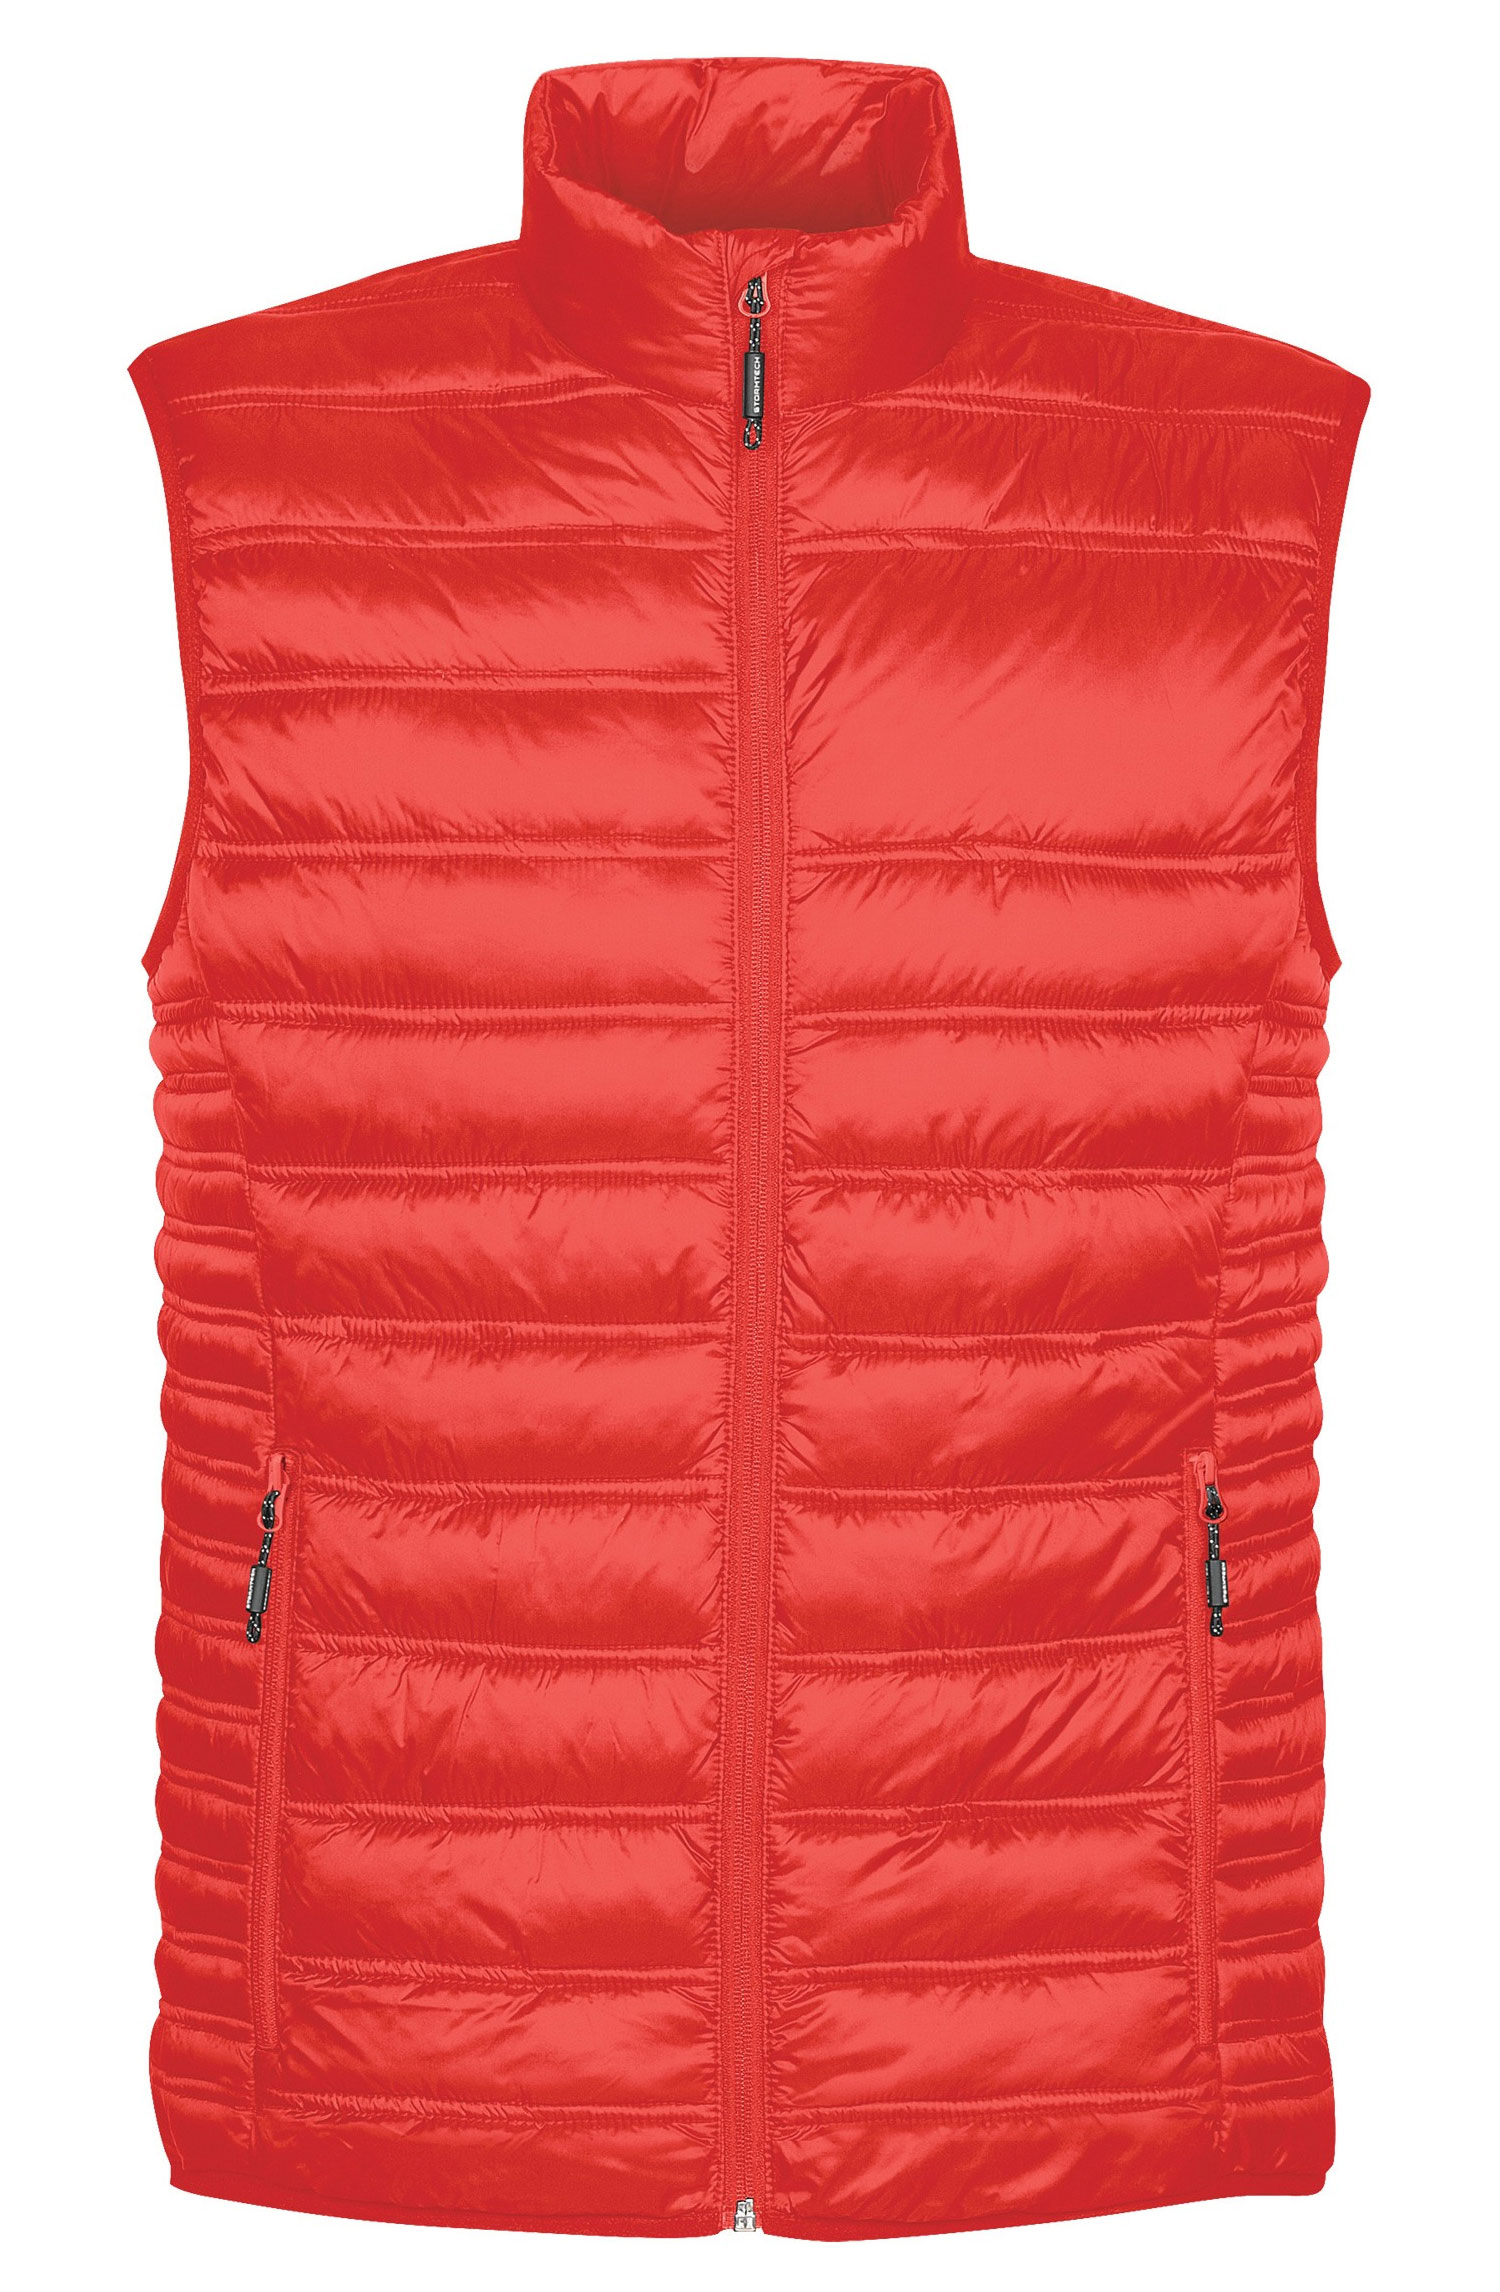 Mens Basecamp Thermal Vest